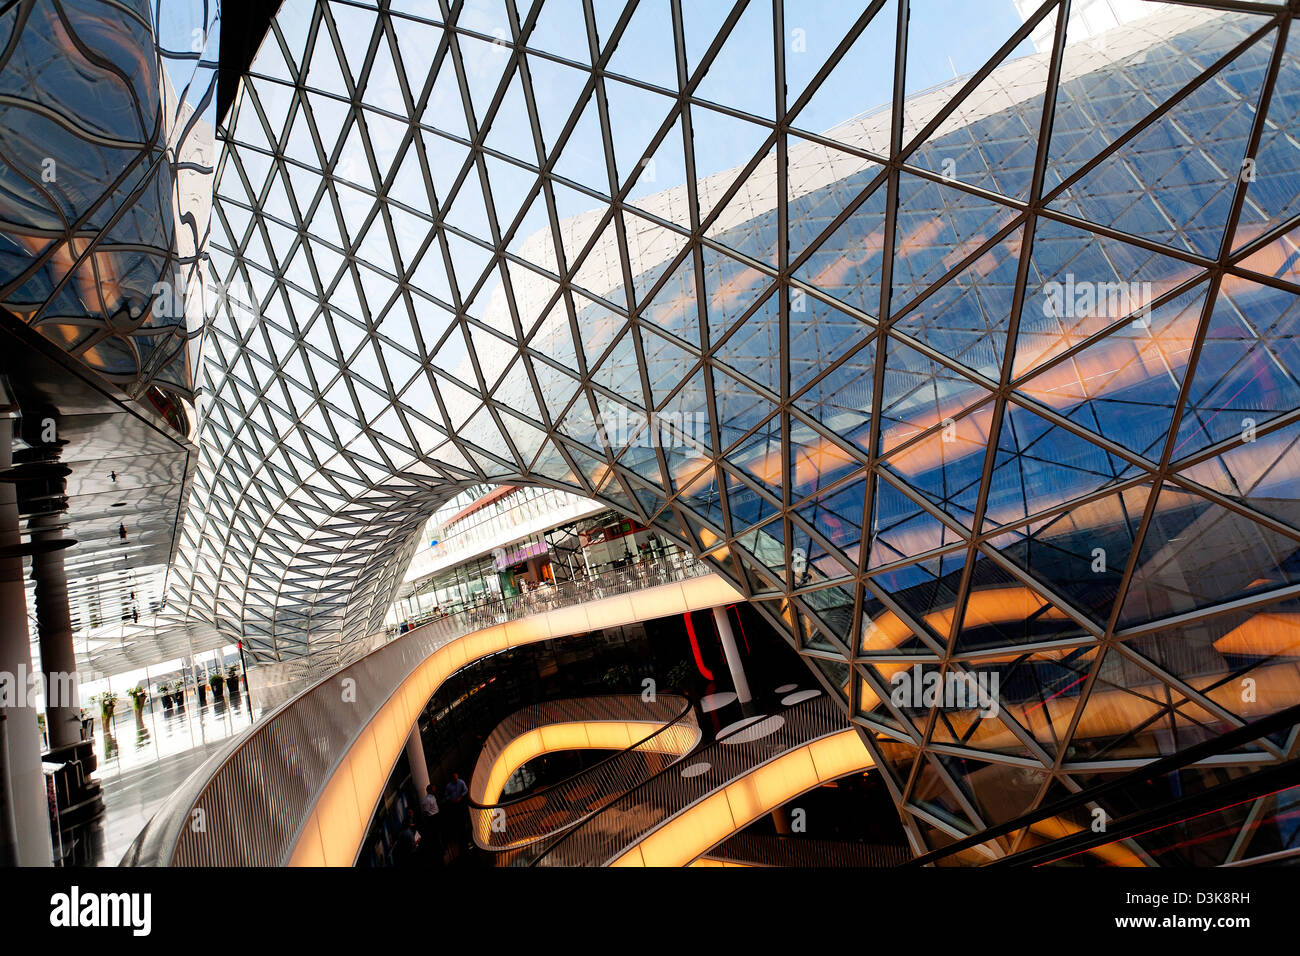 Deutsche Küche Frankfurt Zeil Frankfurt Zeil Shopping Mall Stock Photo 53899093 Alamy